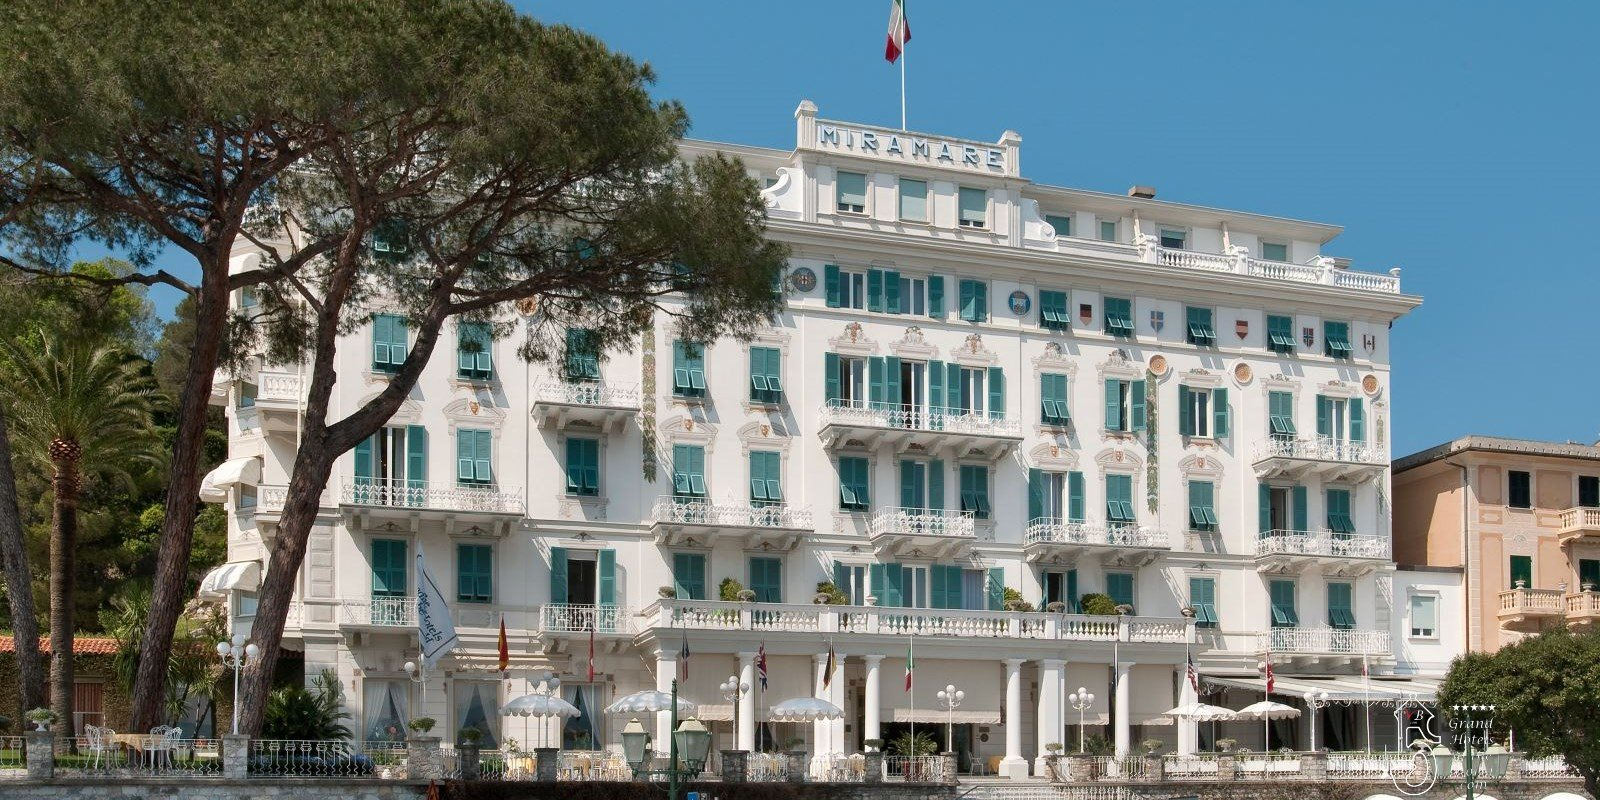 Grand Hotel Miramare in Santa Margherita Ligure